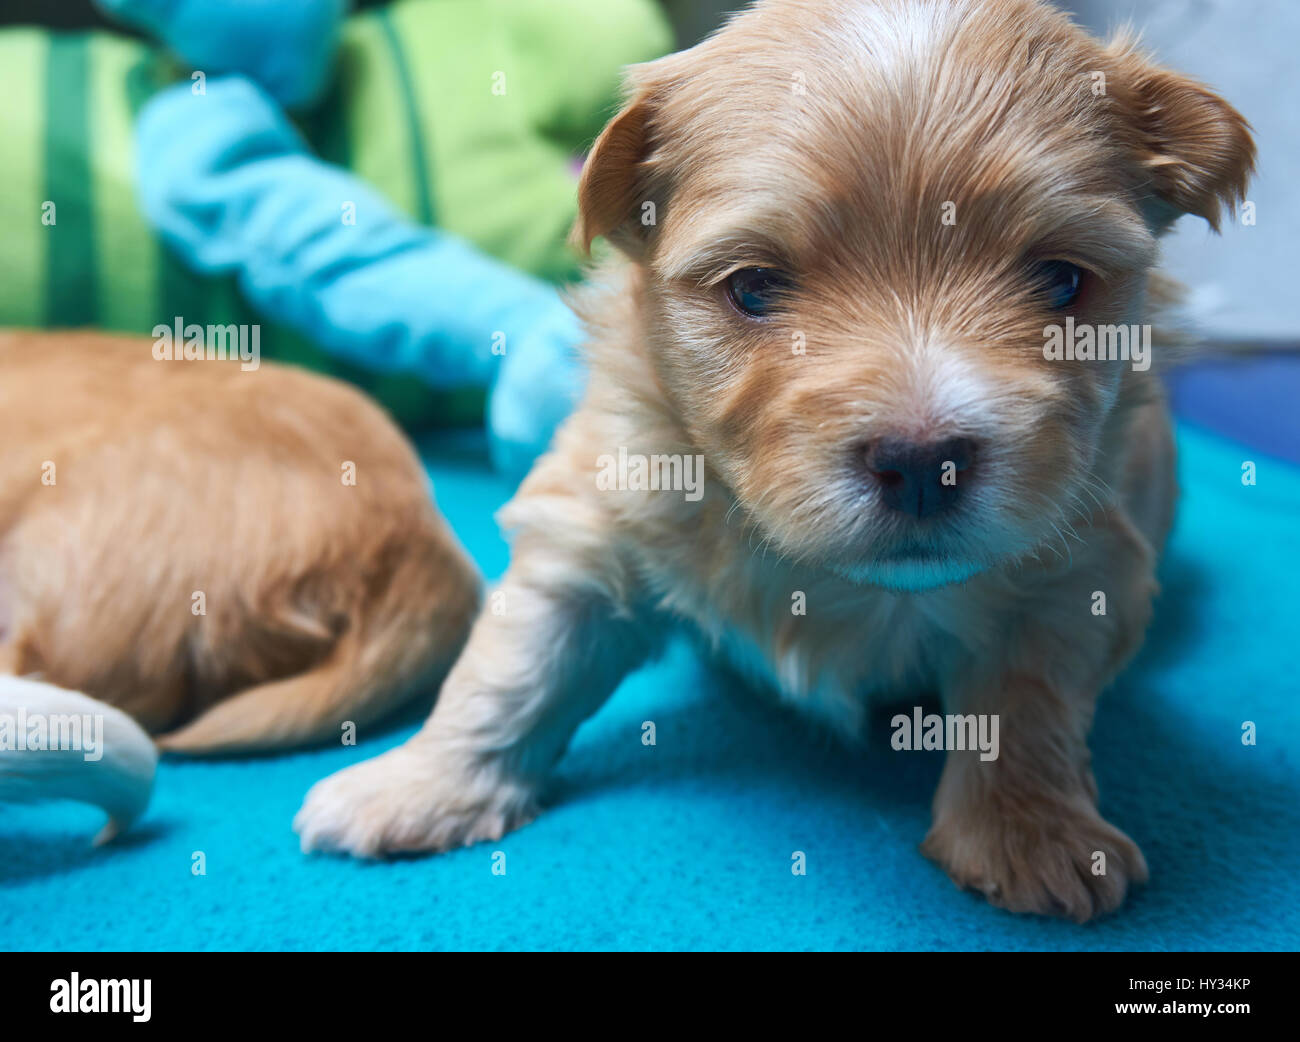 TIred Havaneser puppy looks into the camera Stock Photo